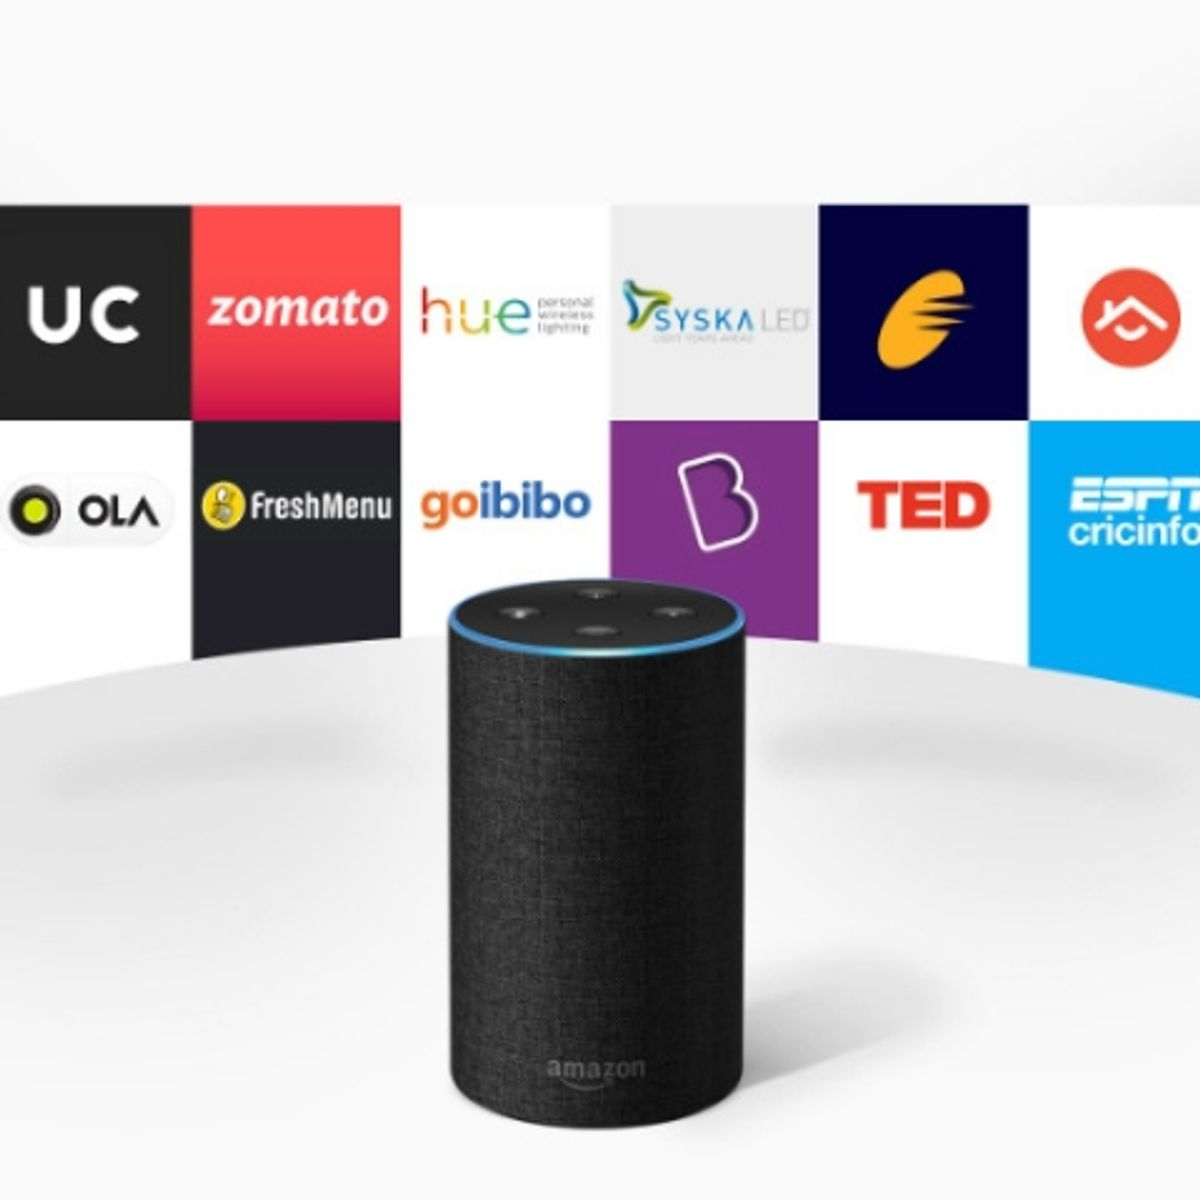 Amazon expands Alexa Skills Kit, Alexa Voice Services to